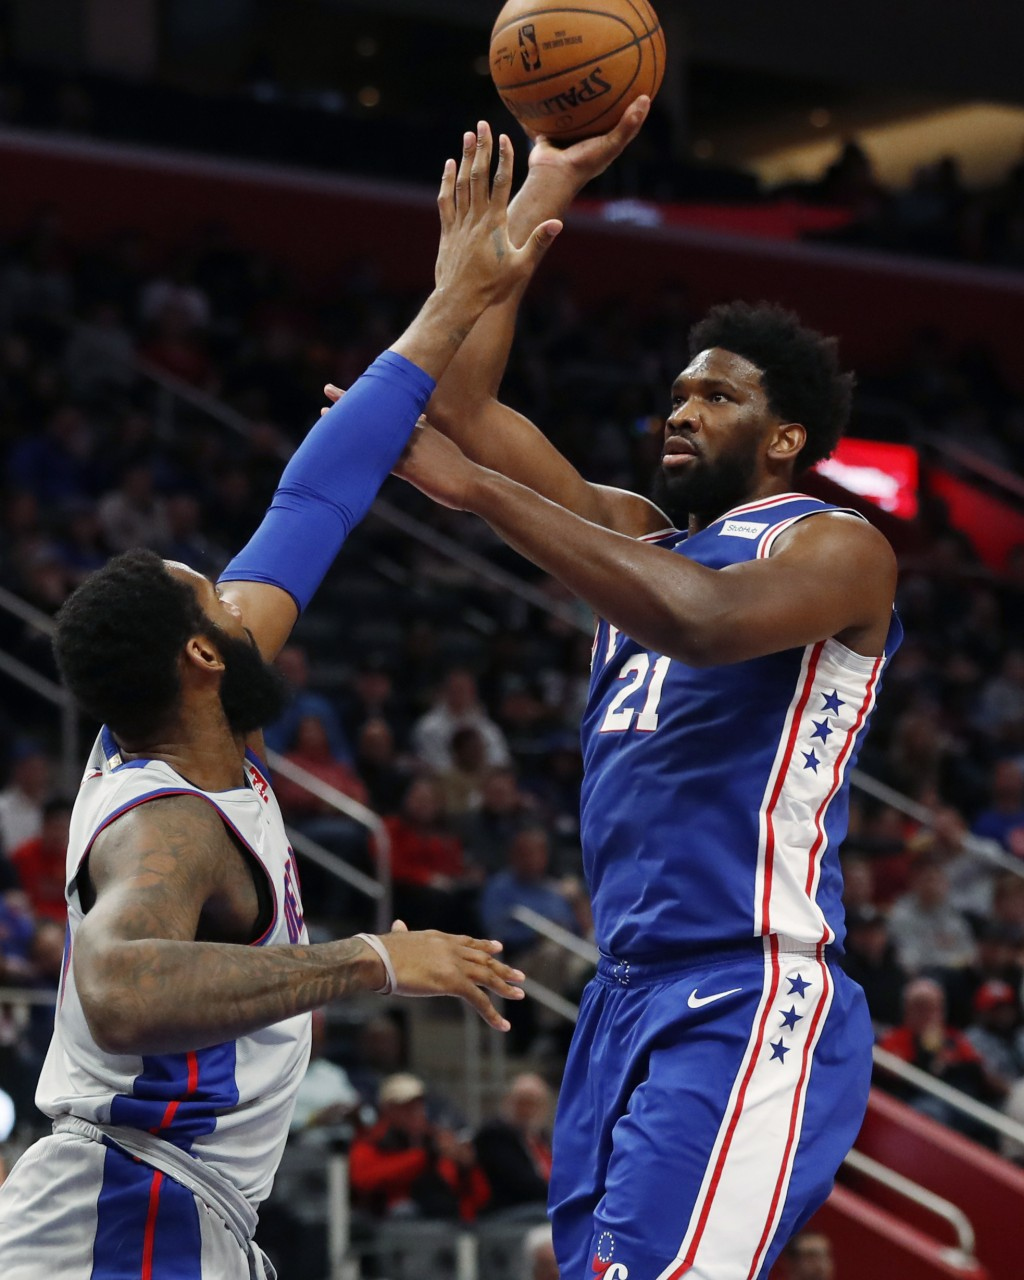 Philadelphia 76ers center Joel Embiid (21) shoots over Detroit Pistons center Andre Drummond during the first half of an NBA basketball game Monday, D...